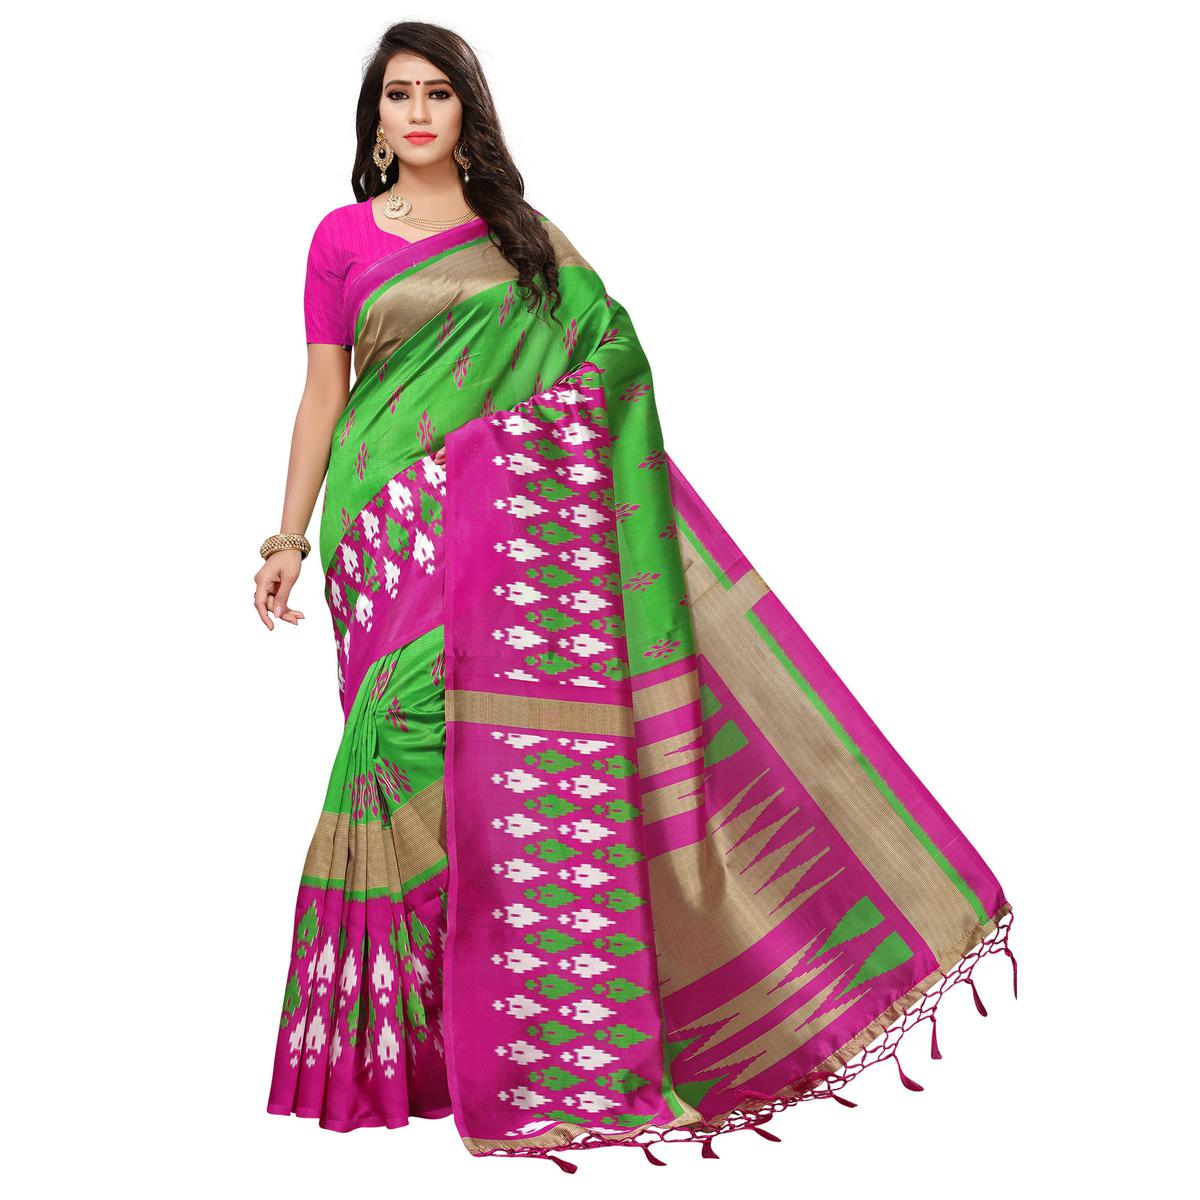 Groovy Green-Pink Colored Printed Festive Wear Mysore Art Silk Saree